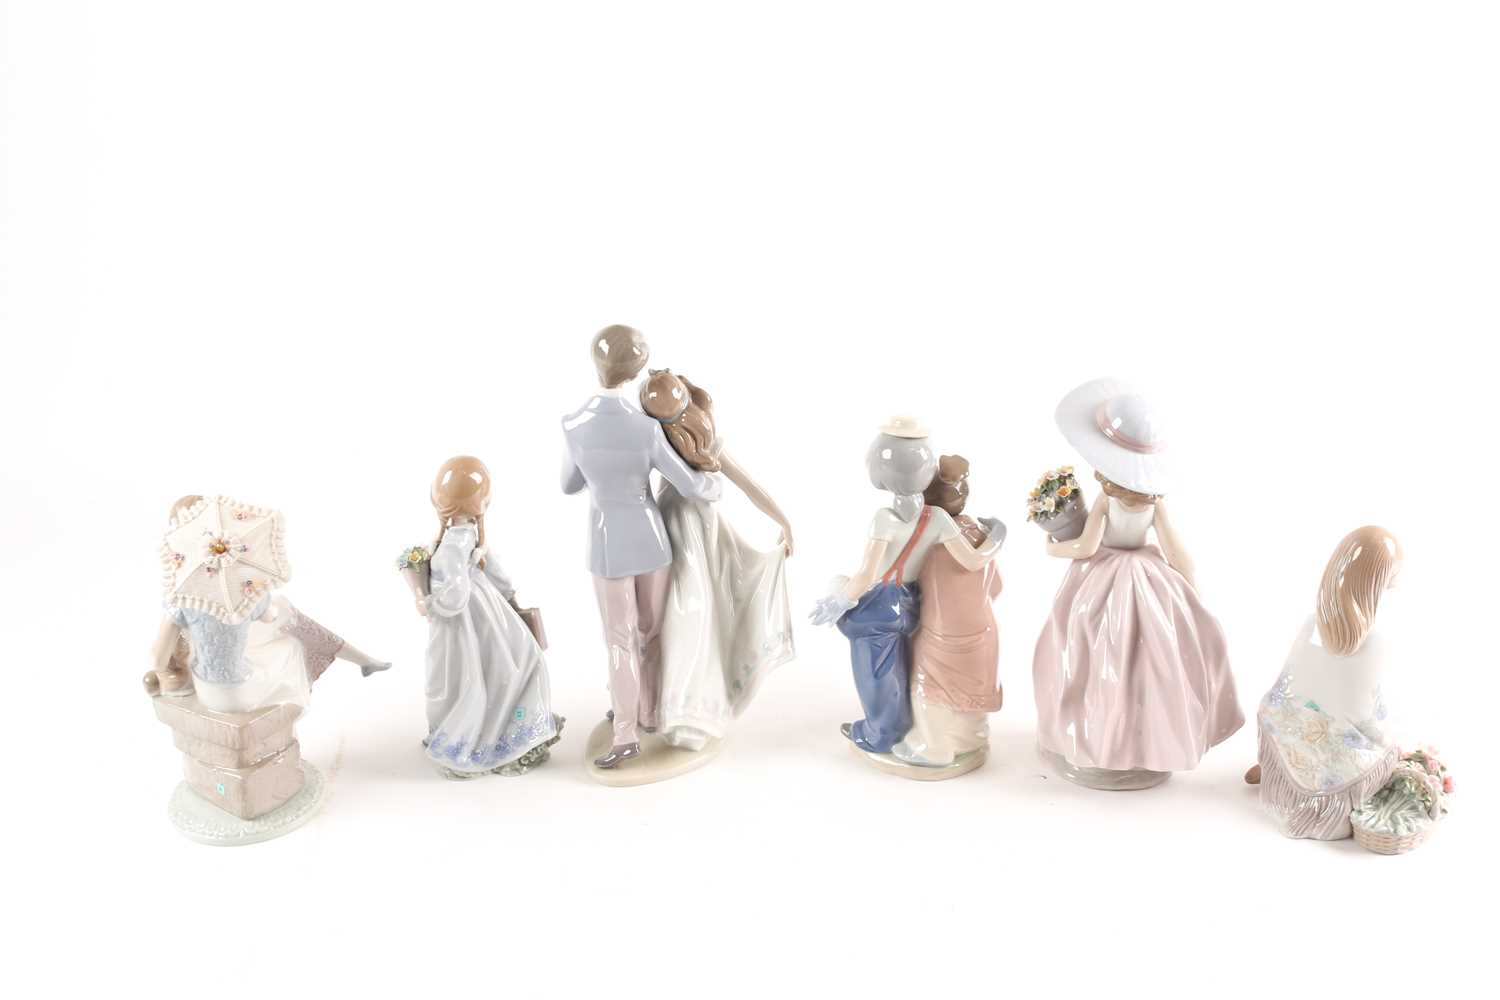 Six Lladro figures, Now & Forever (07642), A Wish Come True, (07676), Pals Forever, (07686), - Image 3 of 6